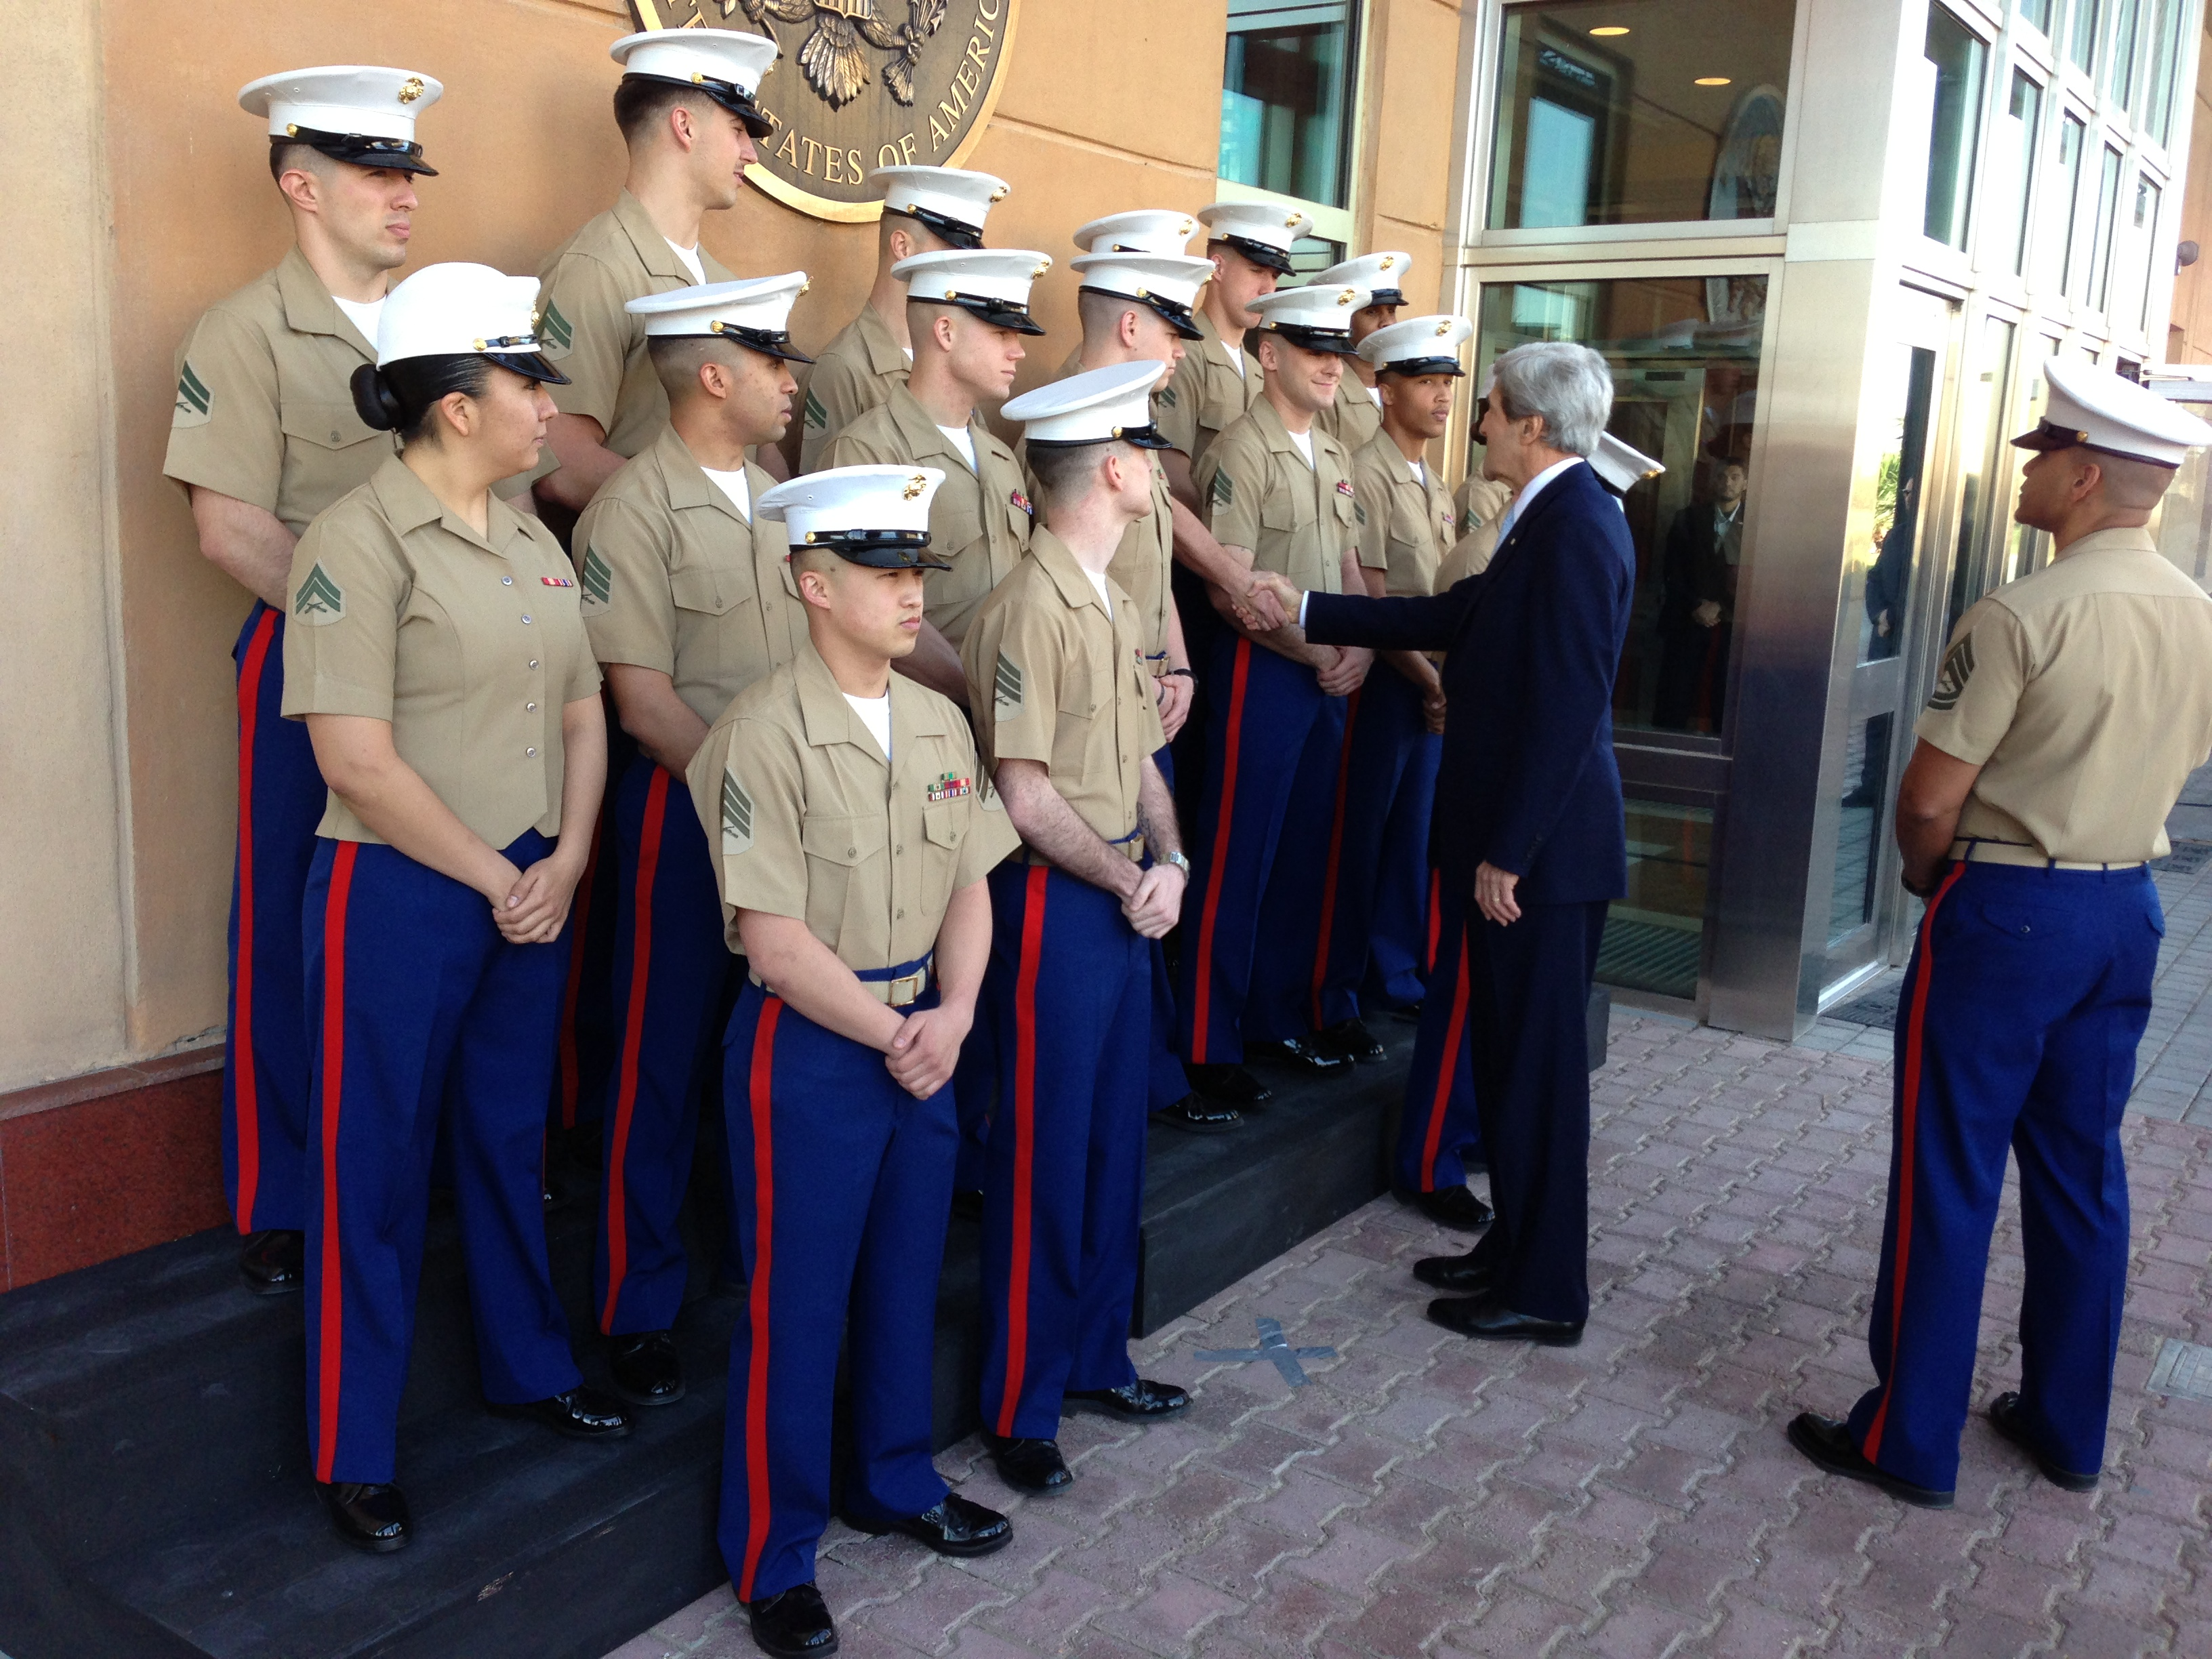 filesecretary kerry and the us embassy baghdad marine corps detachmentjpg